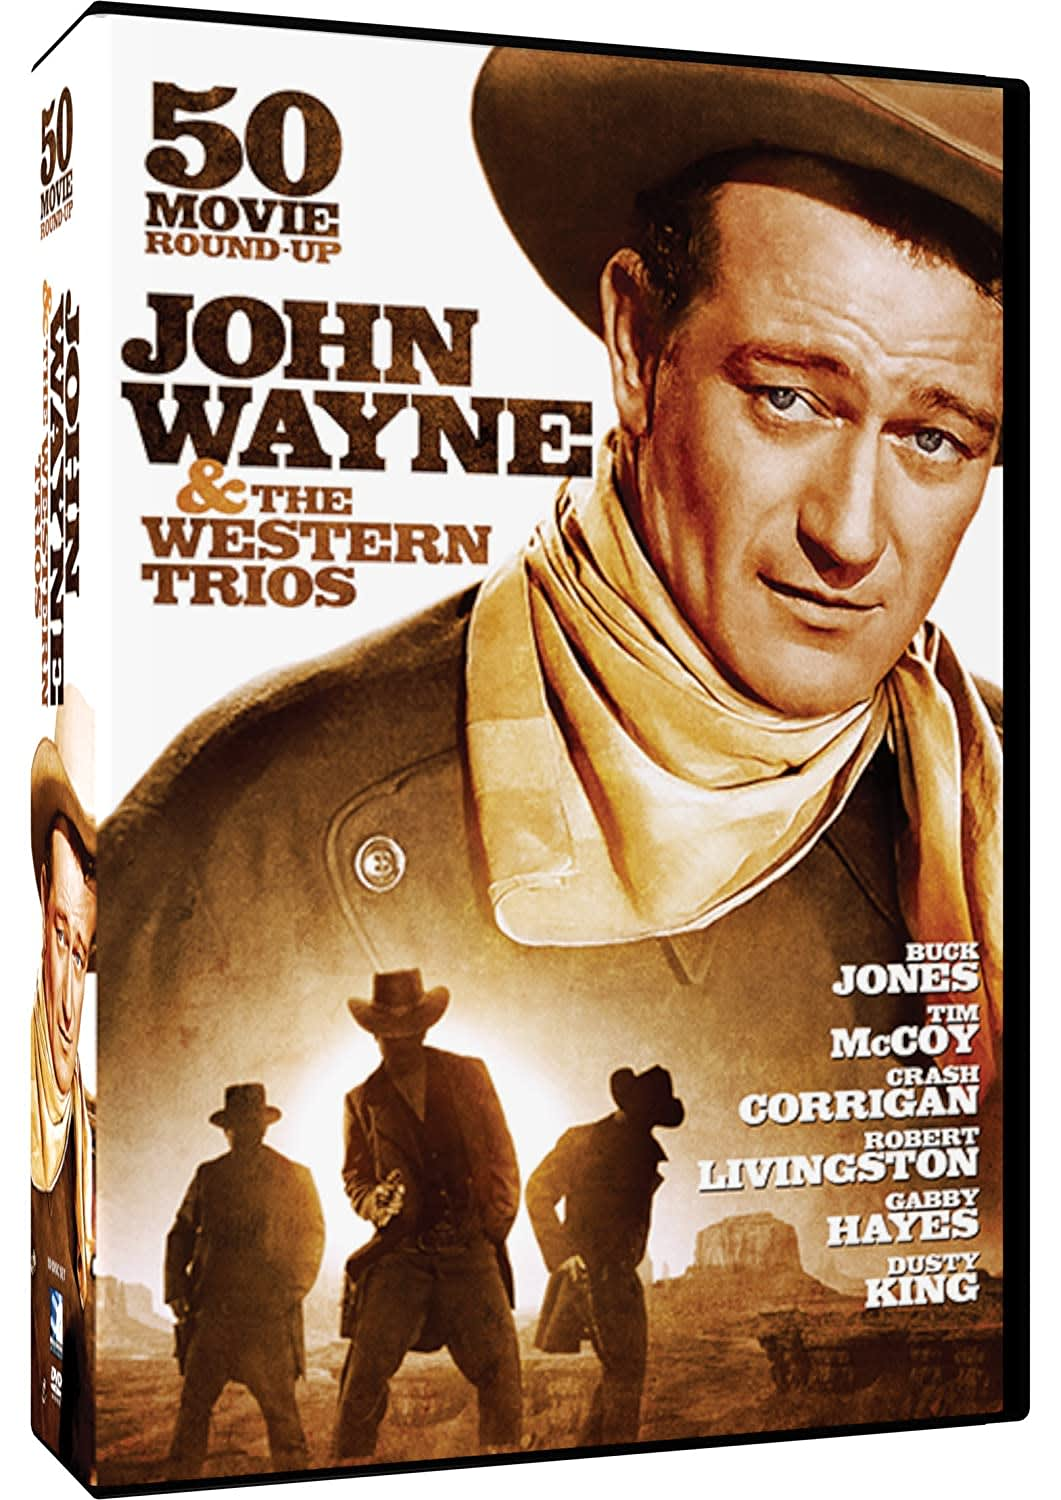 John Wayne & the Western Trios - 50 Movie Roundup [DVD]